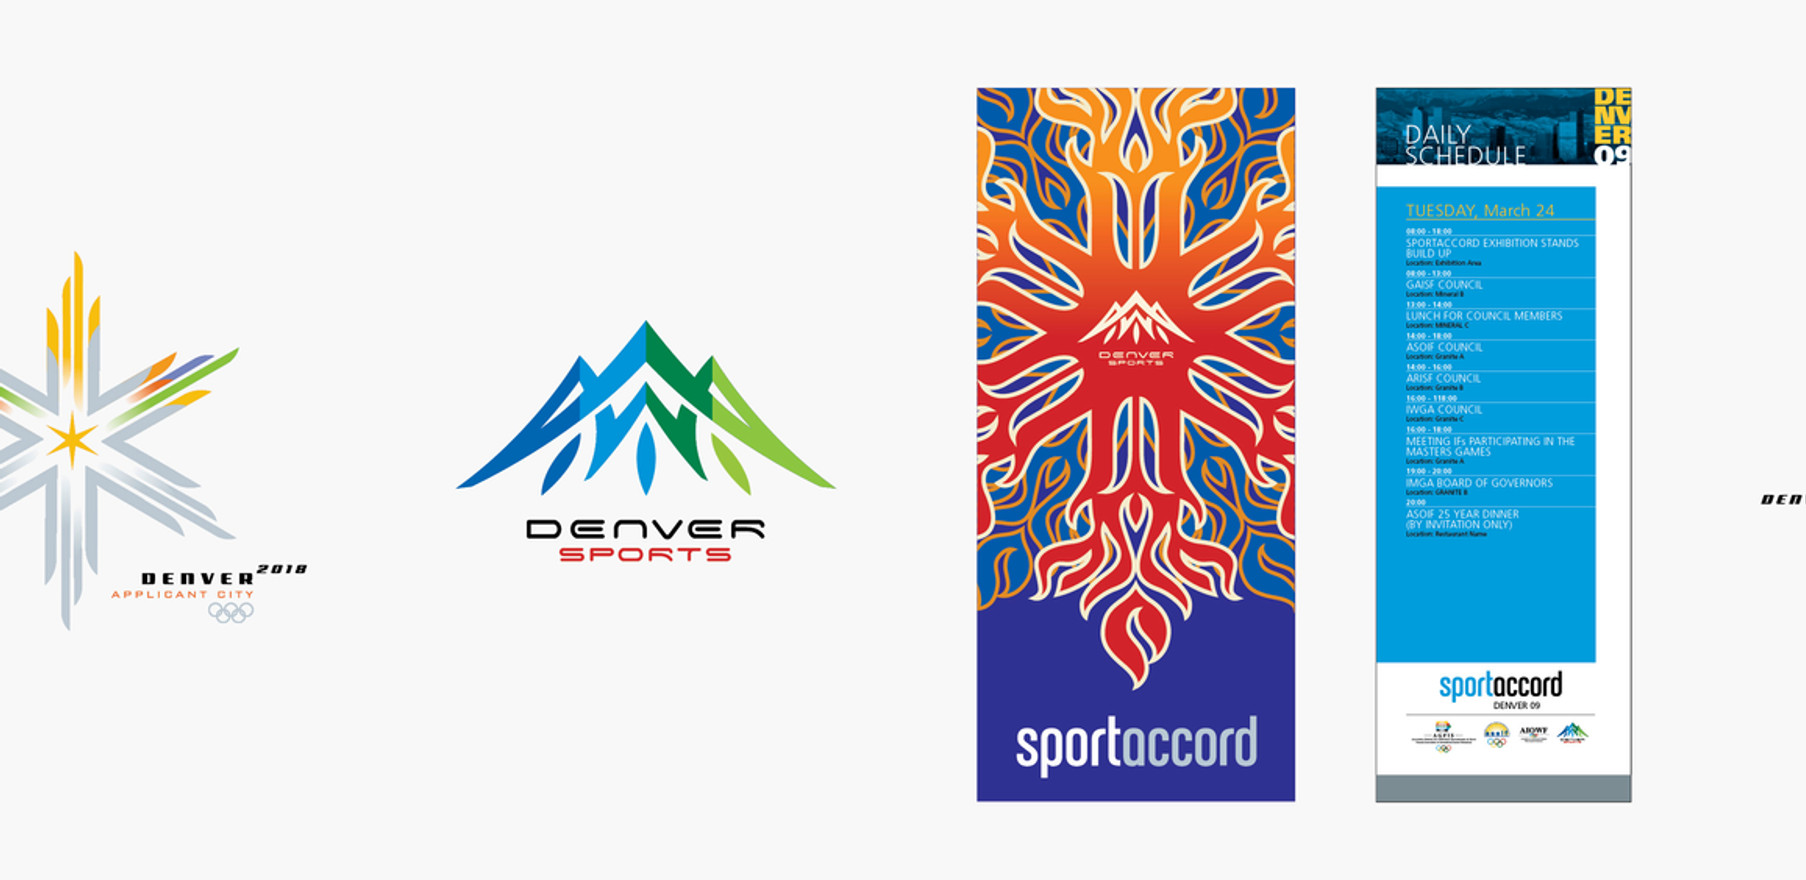 Denver Sport Commission, Colorado 2018 Olympic Bid Identity, Sportaccord (Intern. Olympic Committee - Denver)